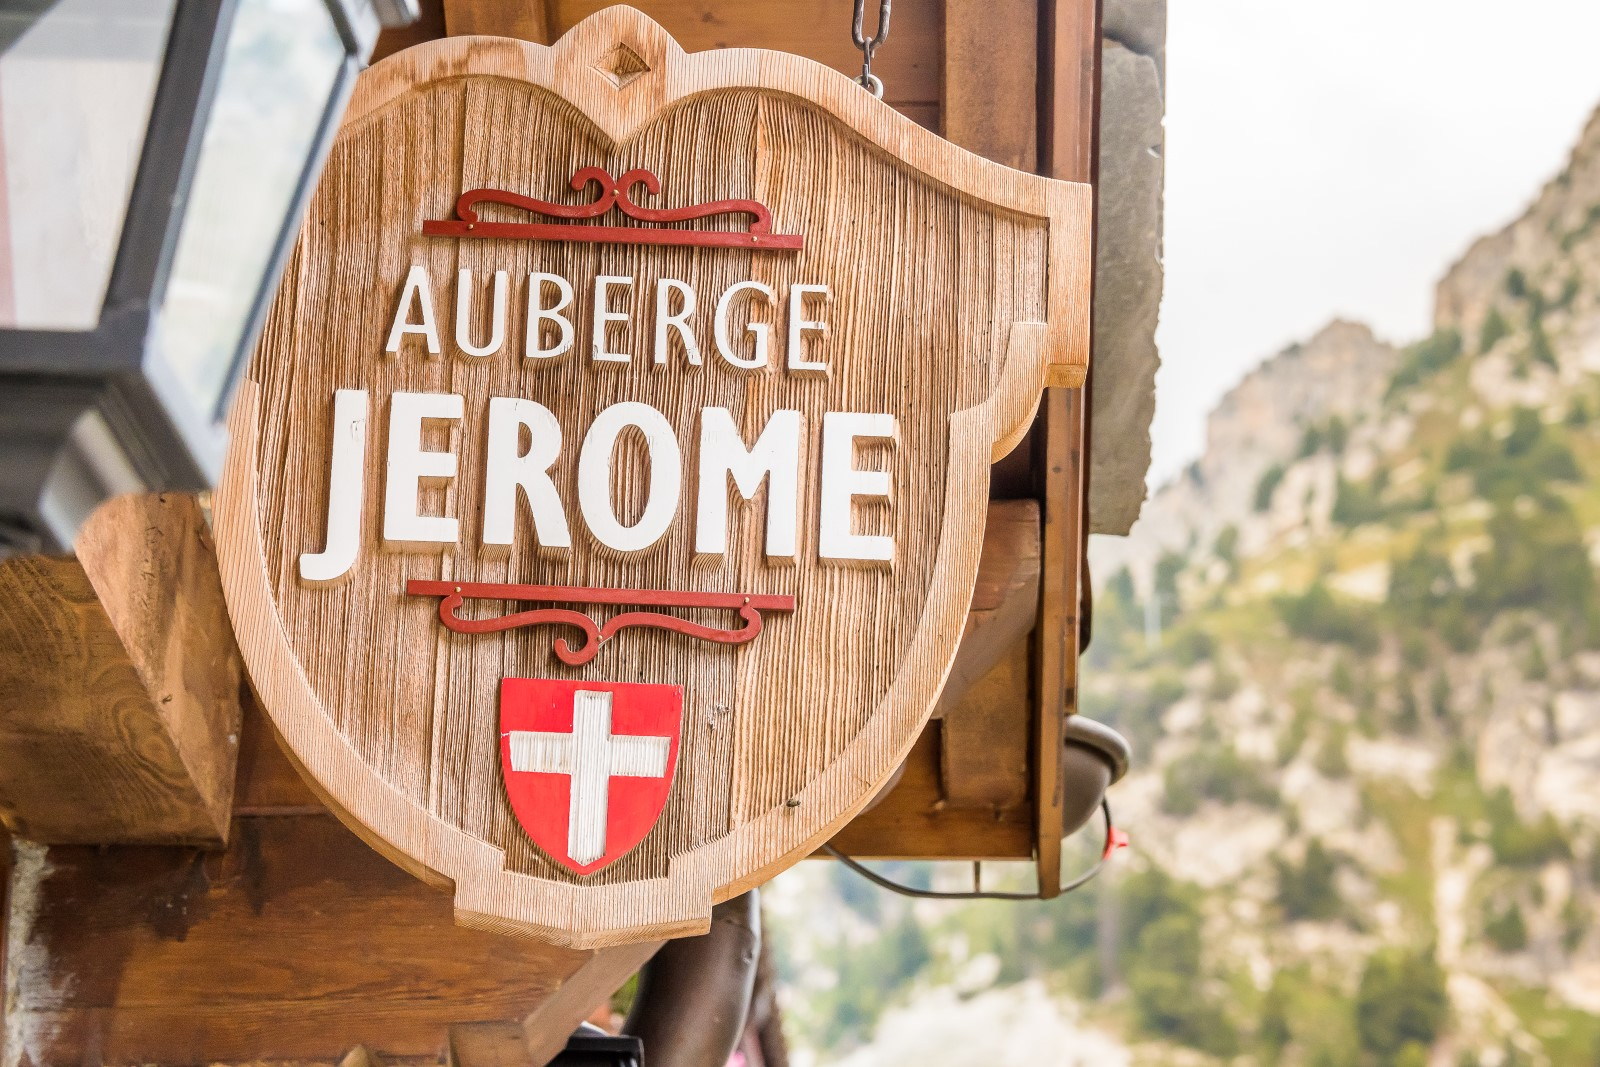 Auberg Jerome in summer